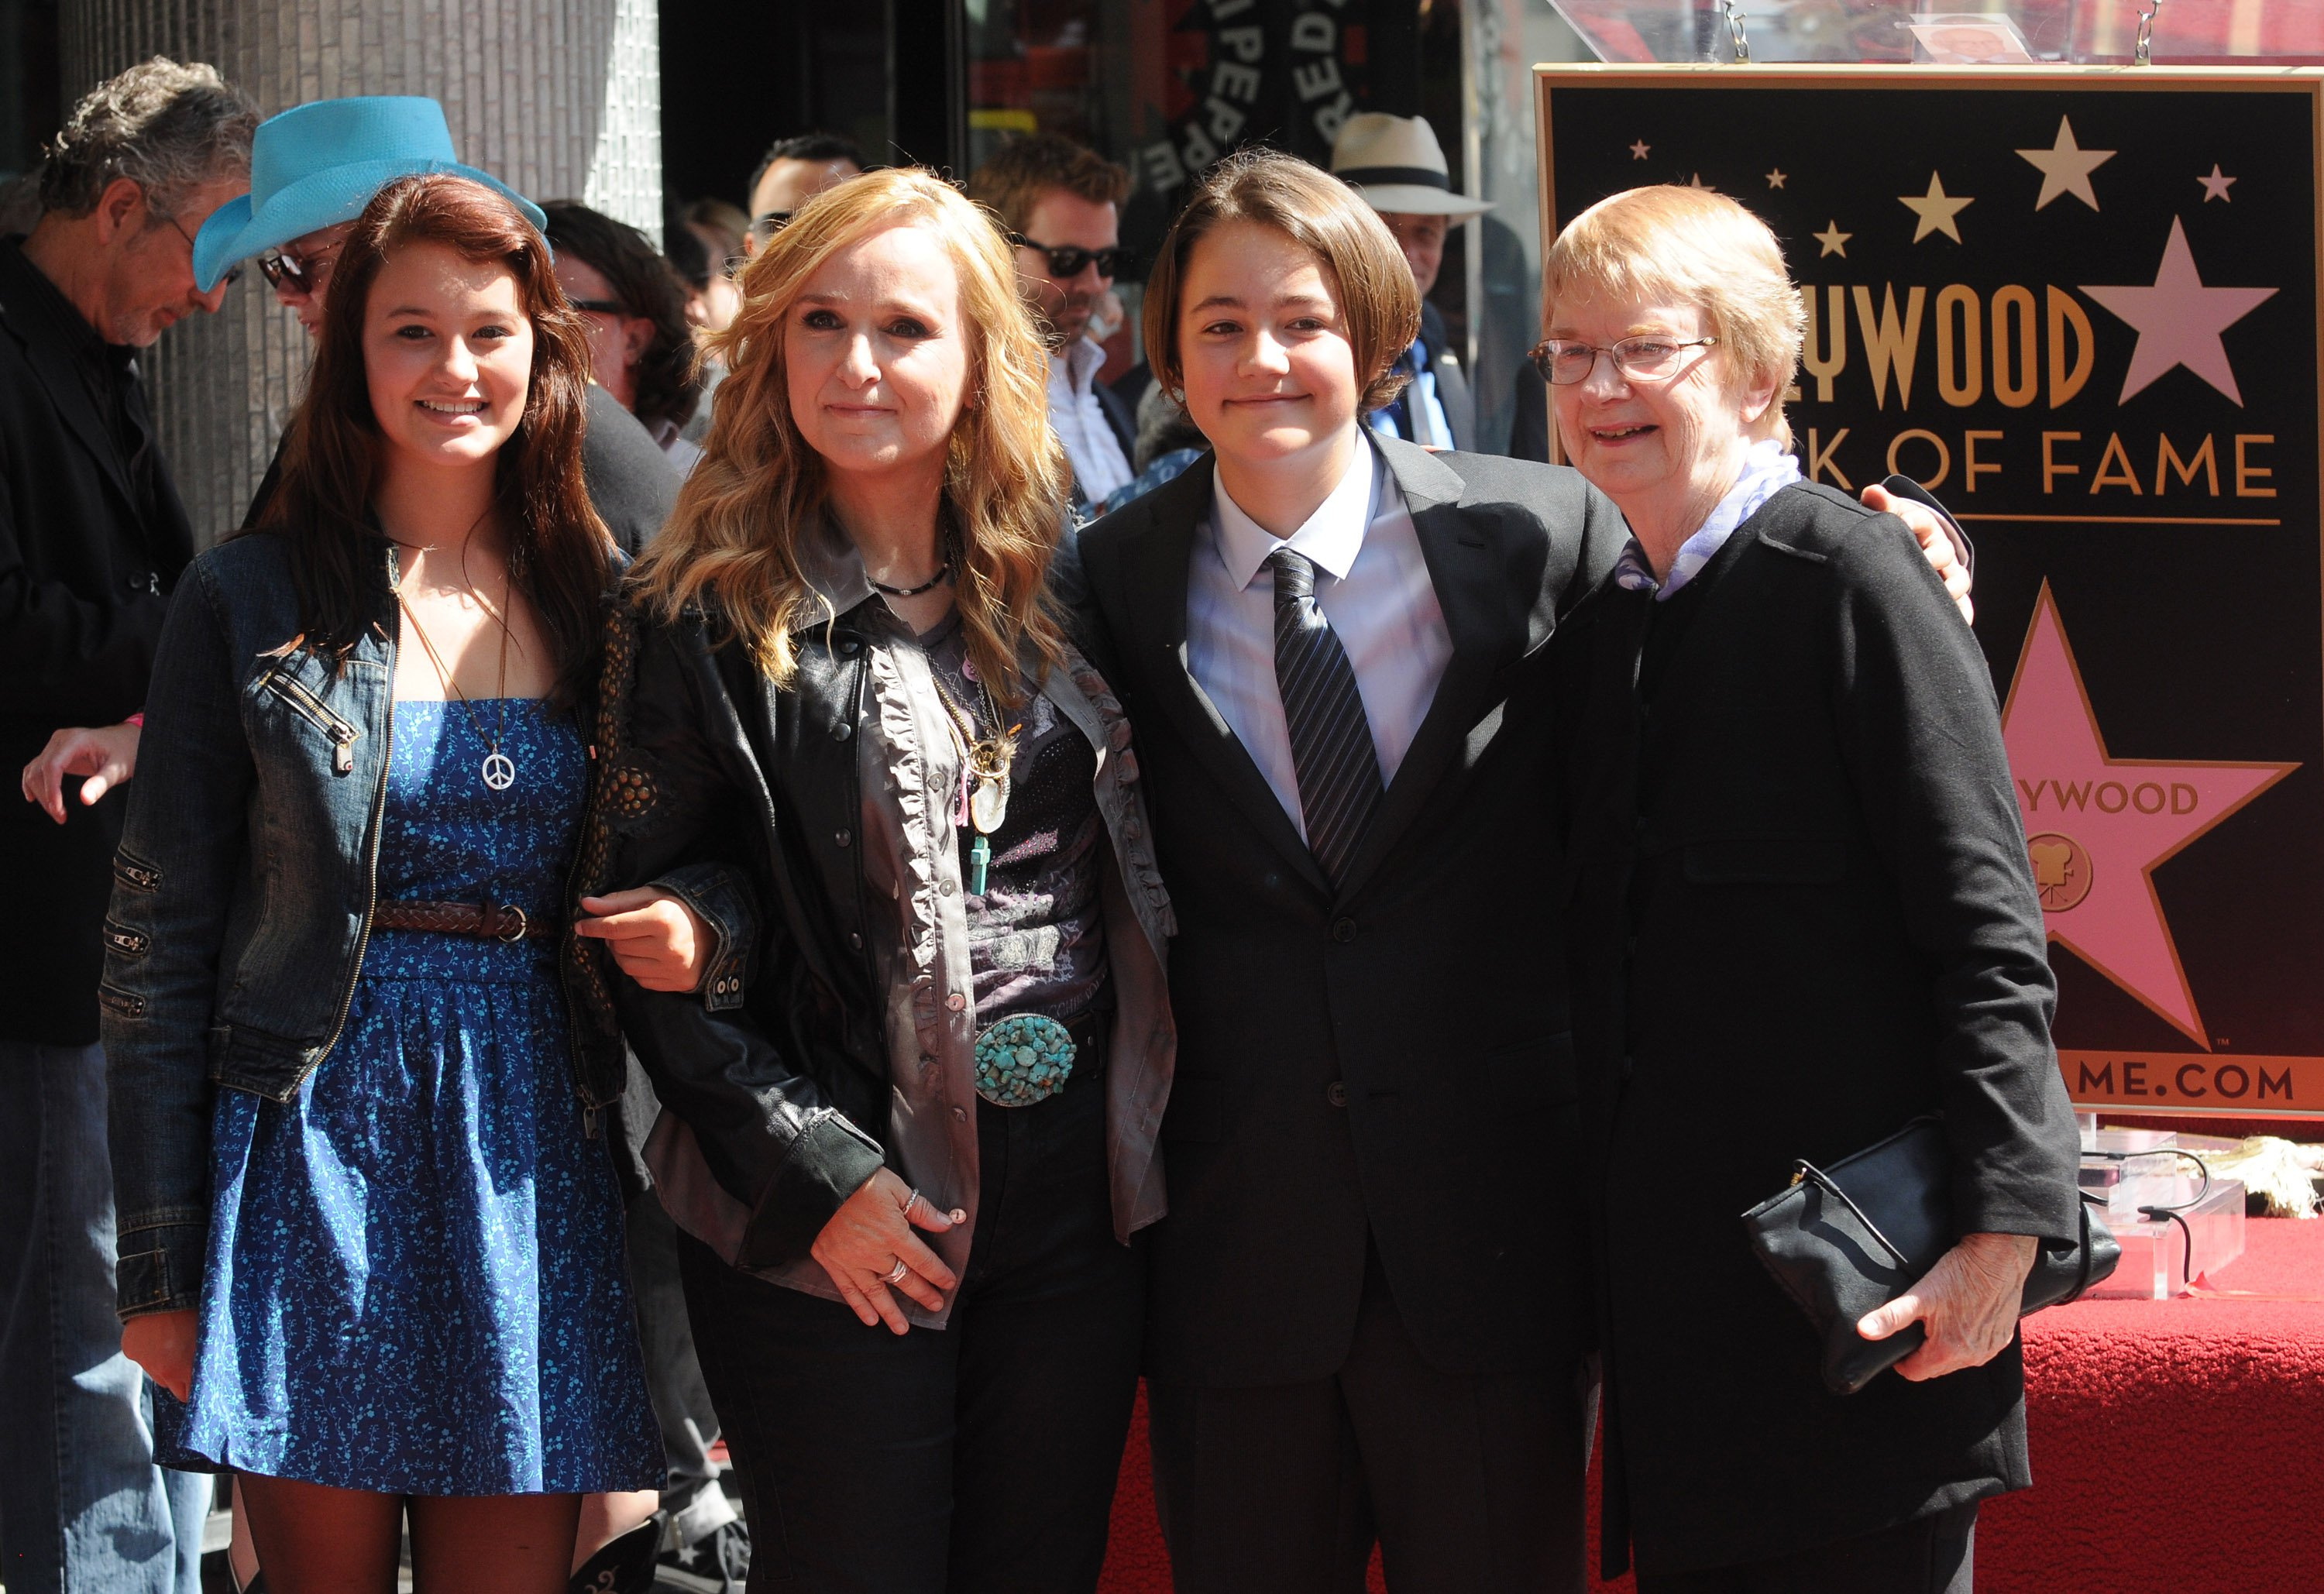 Bailey Cypher, Melissa Etheridge, Beckett Cypher and Elizabeth Williamson attend Melissa Etheridge's Hollywood Walk of Fame Induction Ceremony on September 27, 2011, in Hollywood, California. | Source: Getty Images.